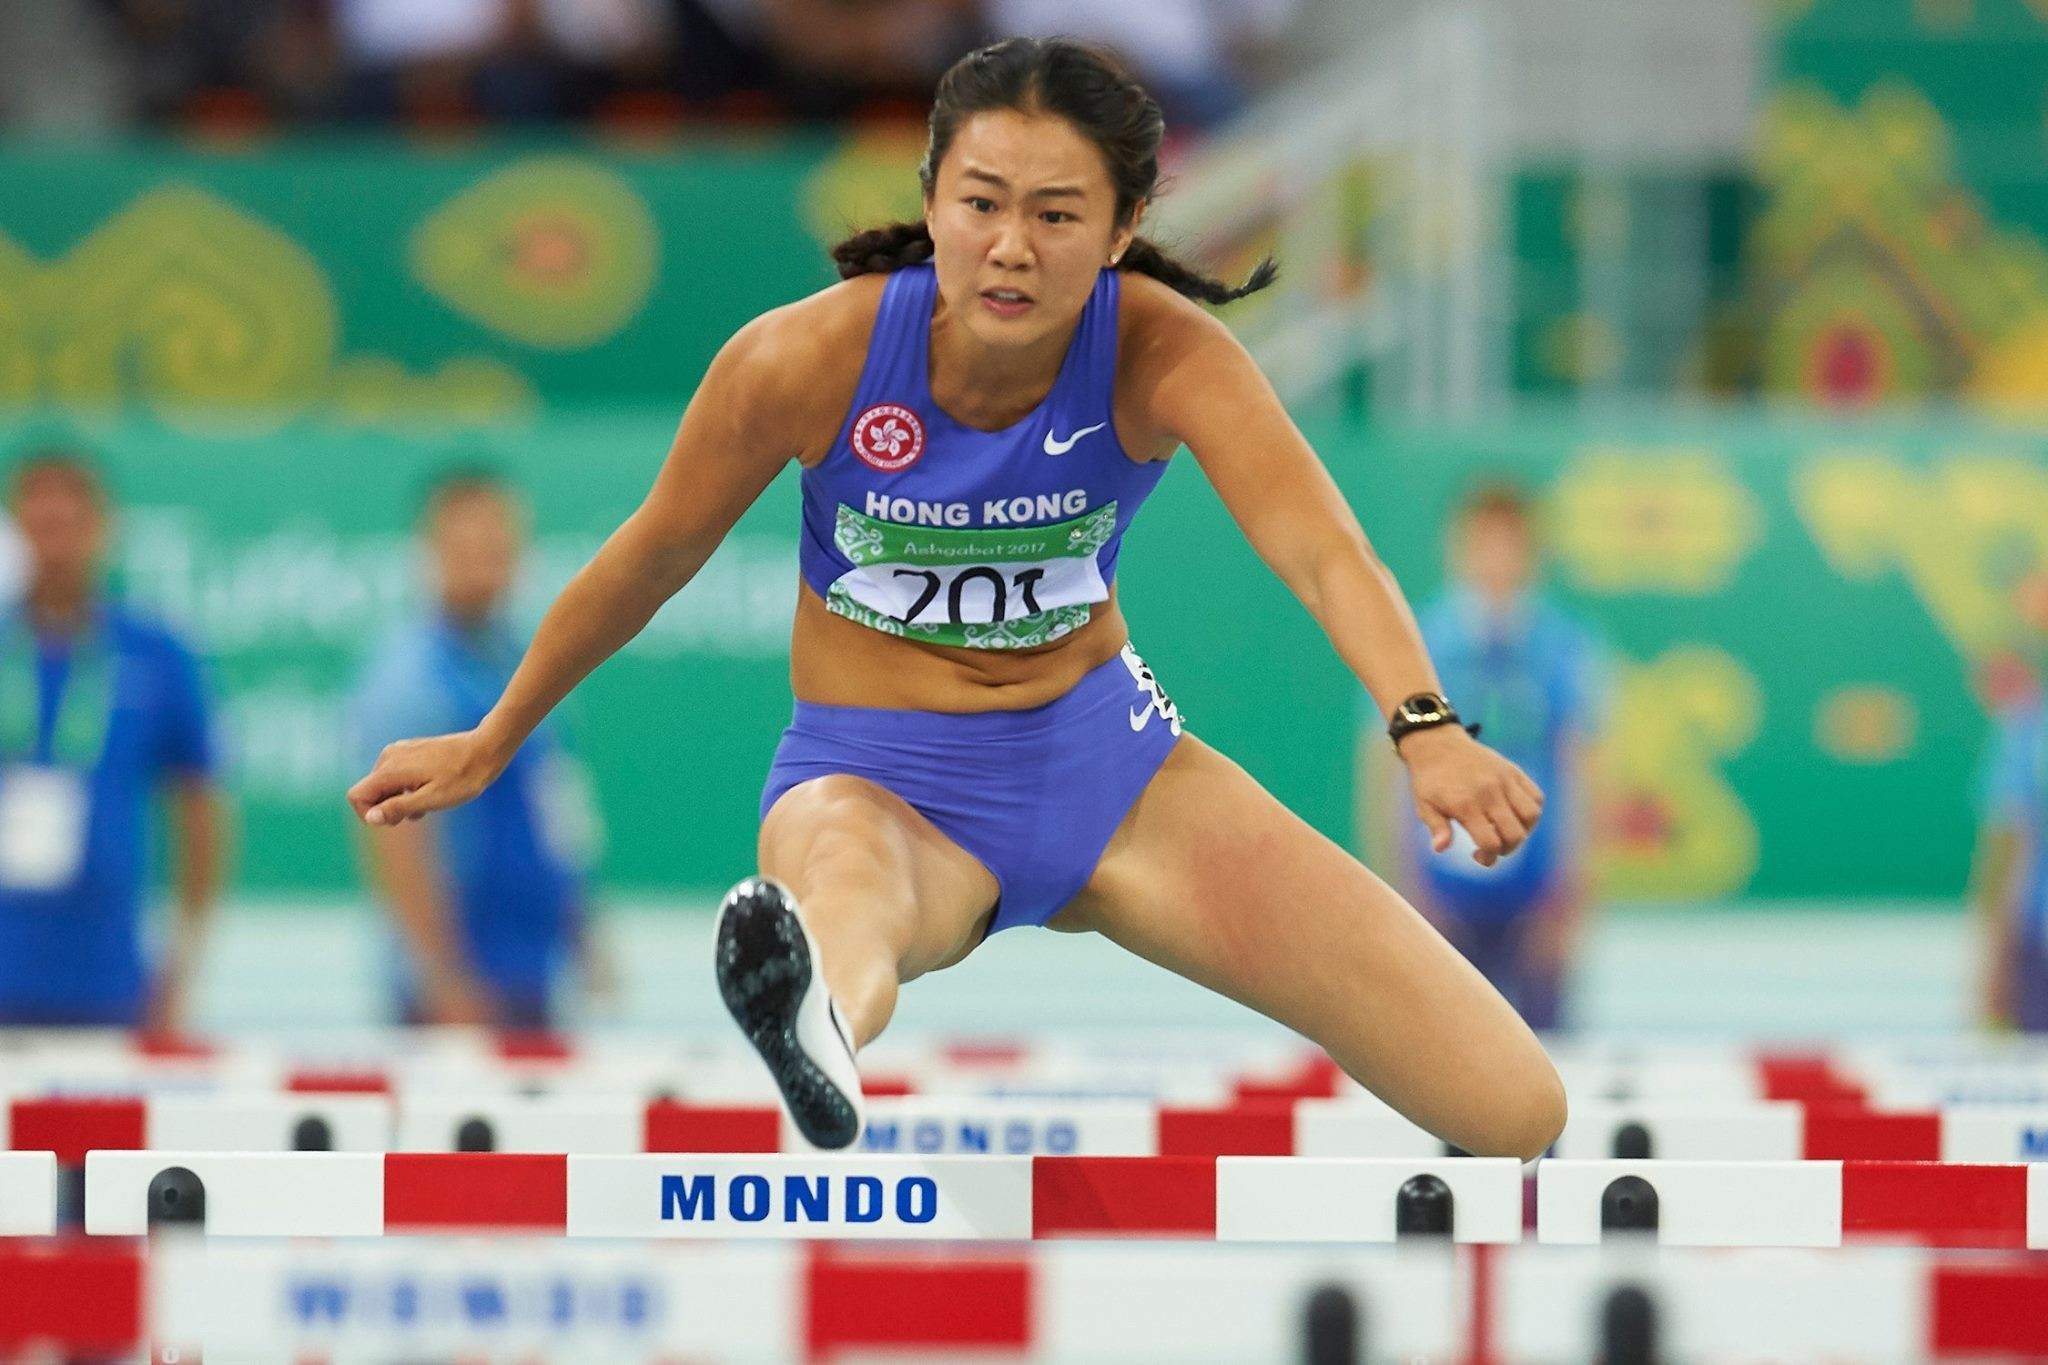 The women's 60m hurdles event was won by Hong Kong's Lui Lai Yiu in a personal best time ©Ashgabat 2017/Facebook